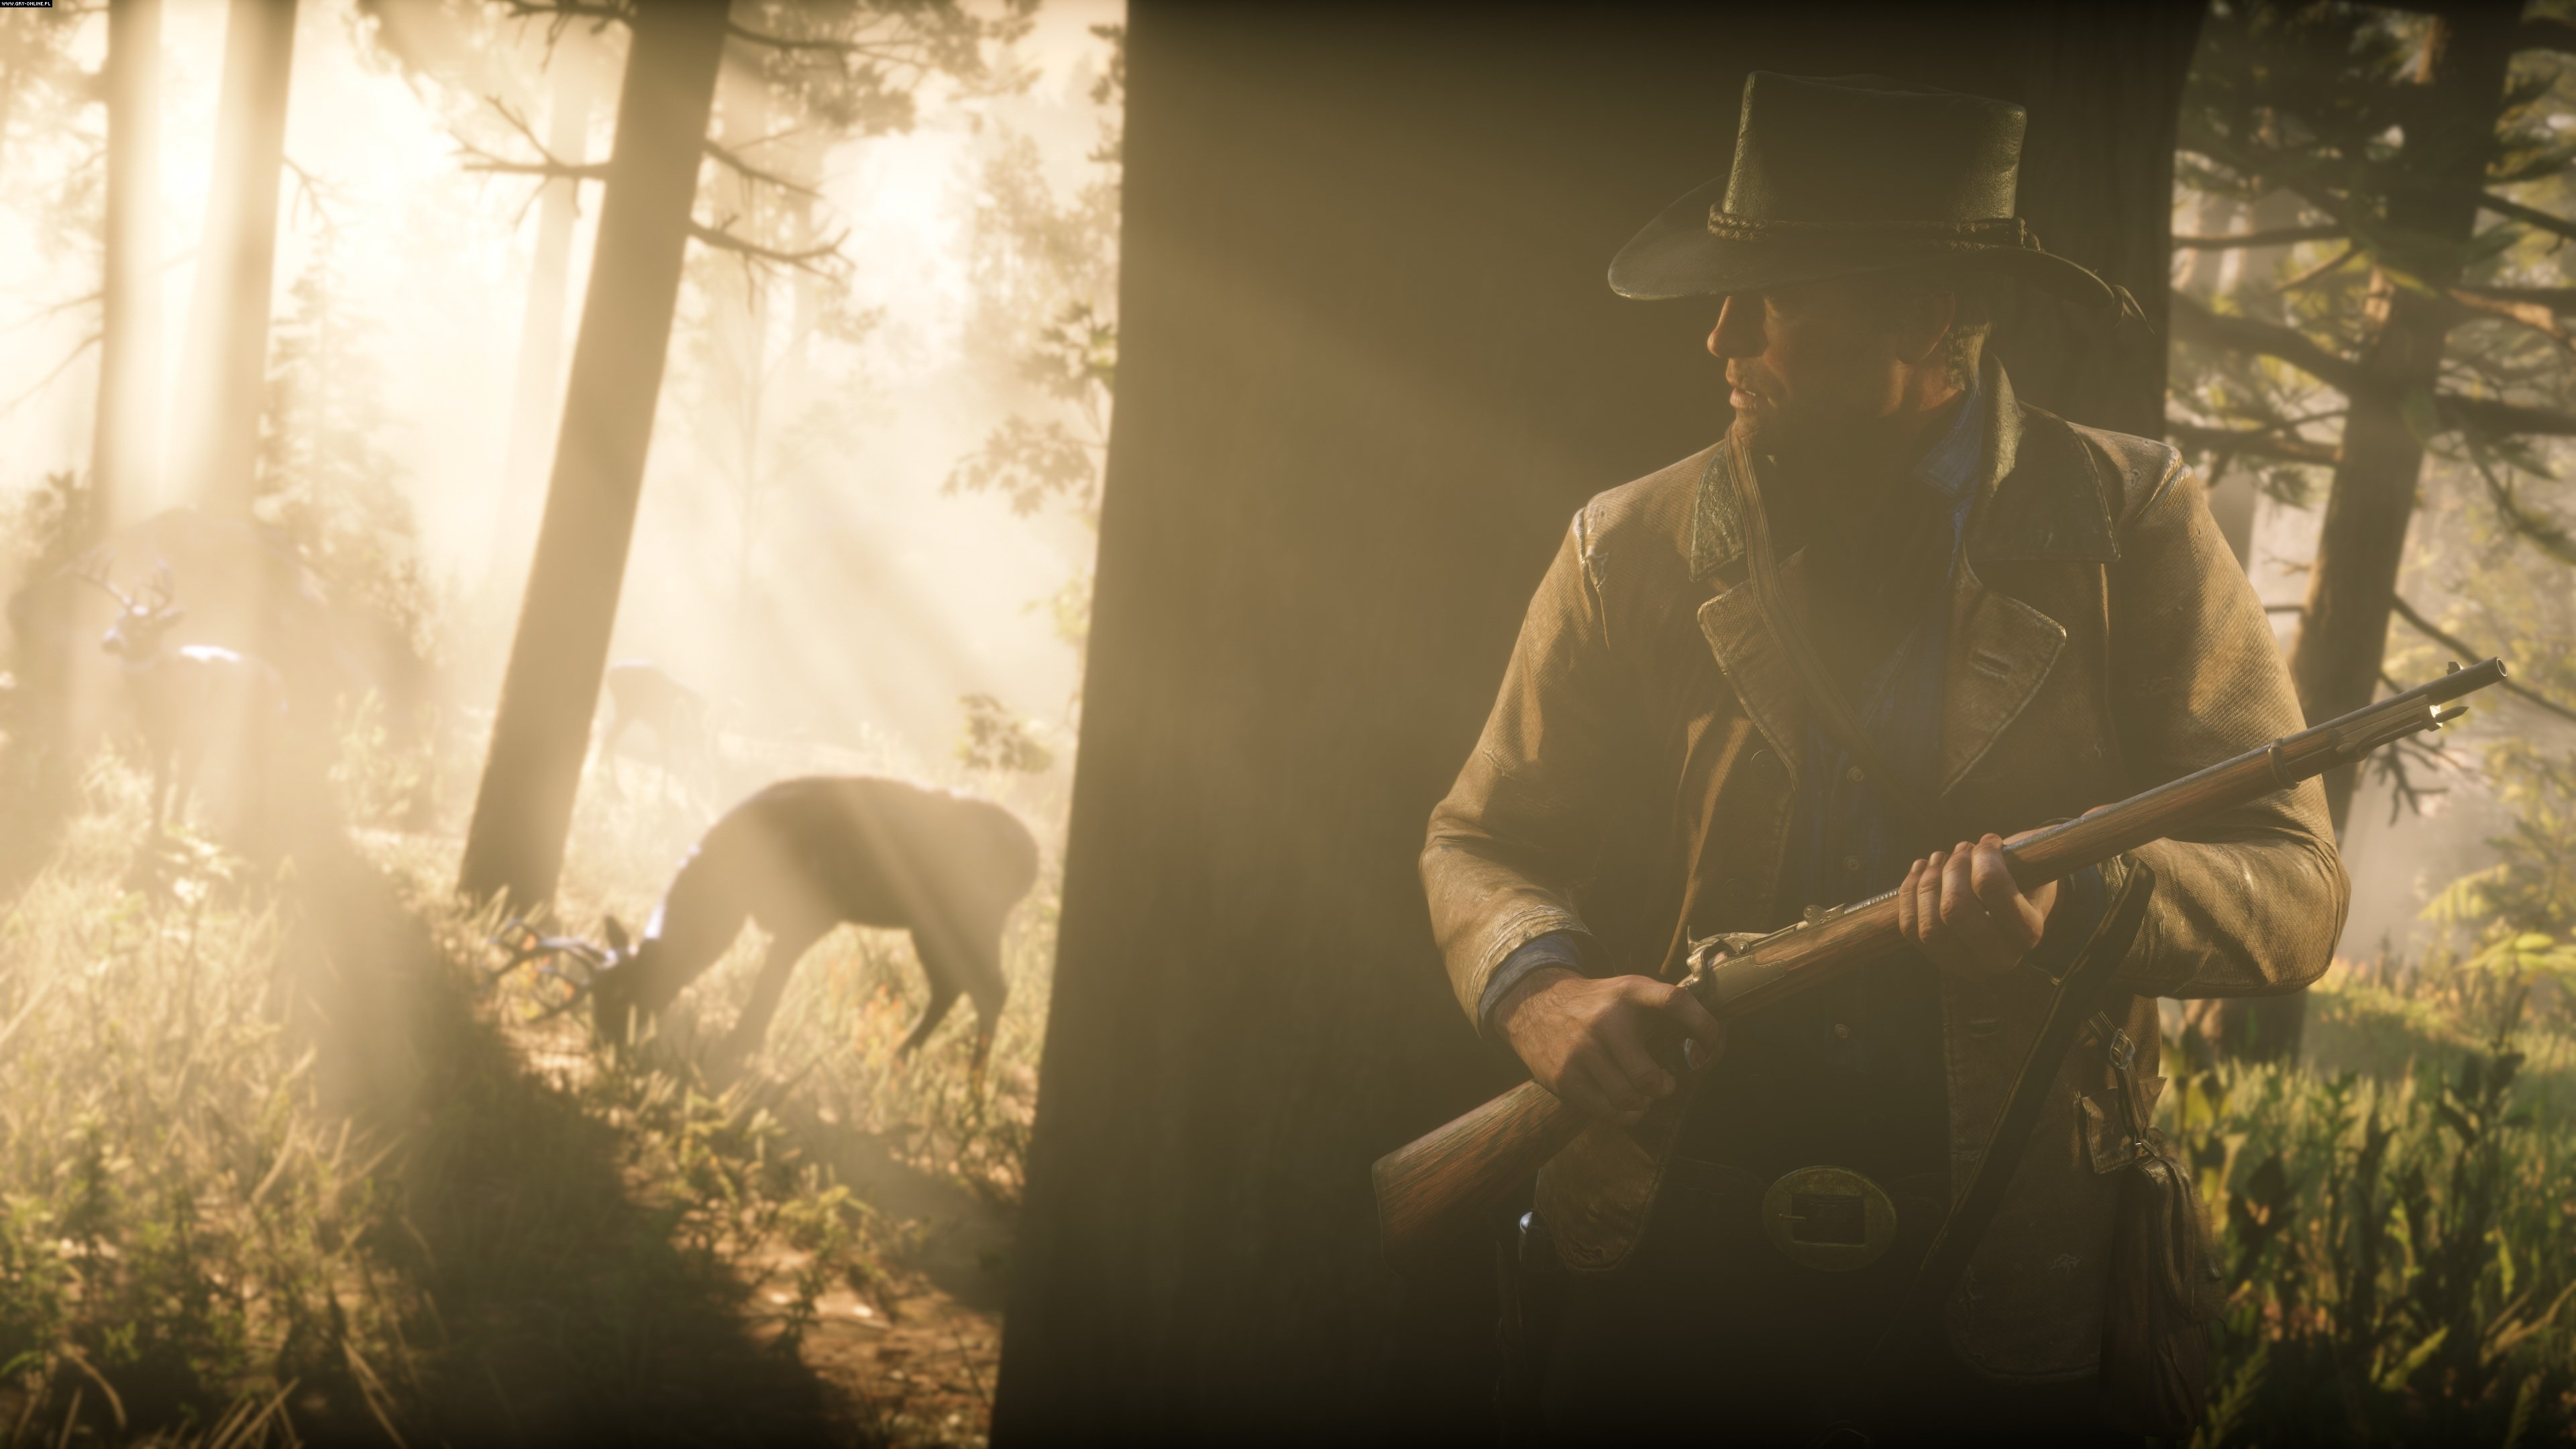 Red Dead Redemption 2 PC Gry Screen 9/150, Rockstar Games